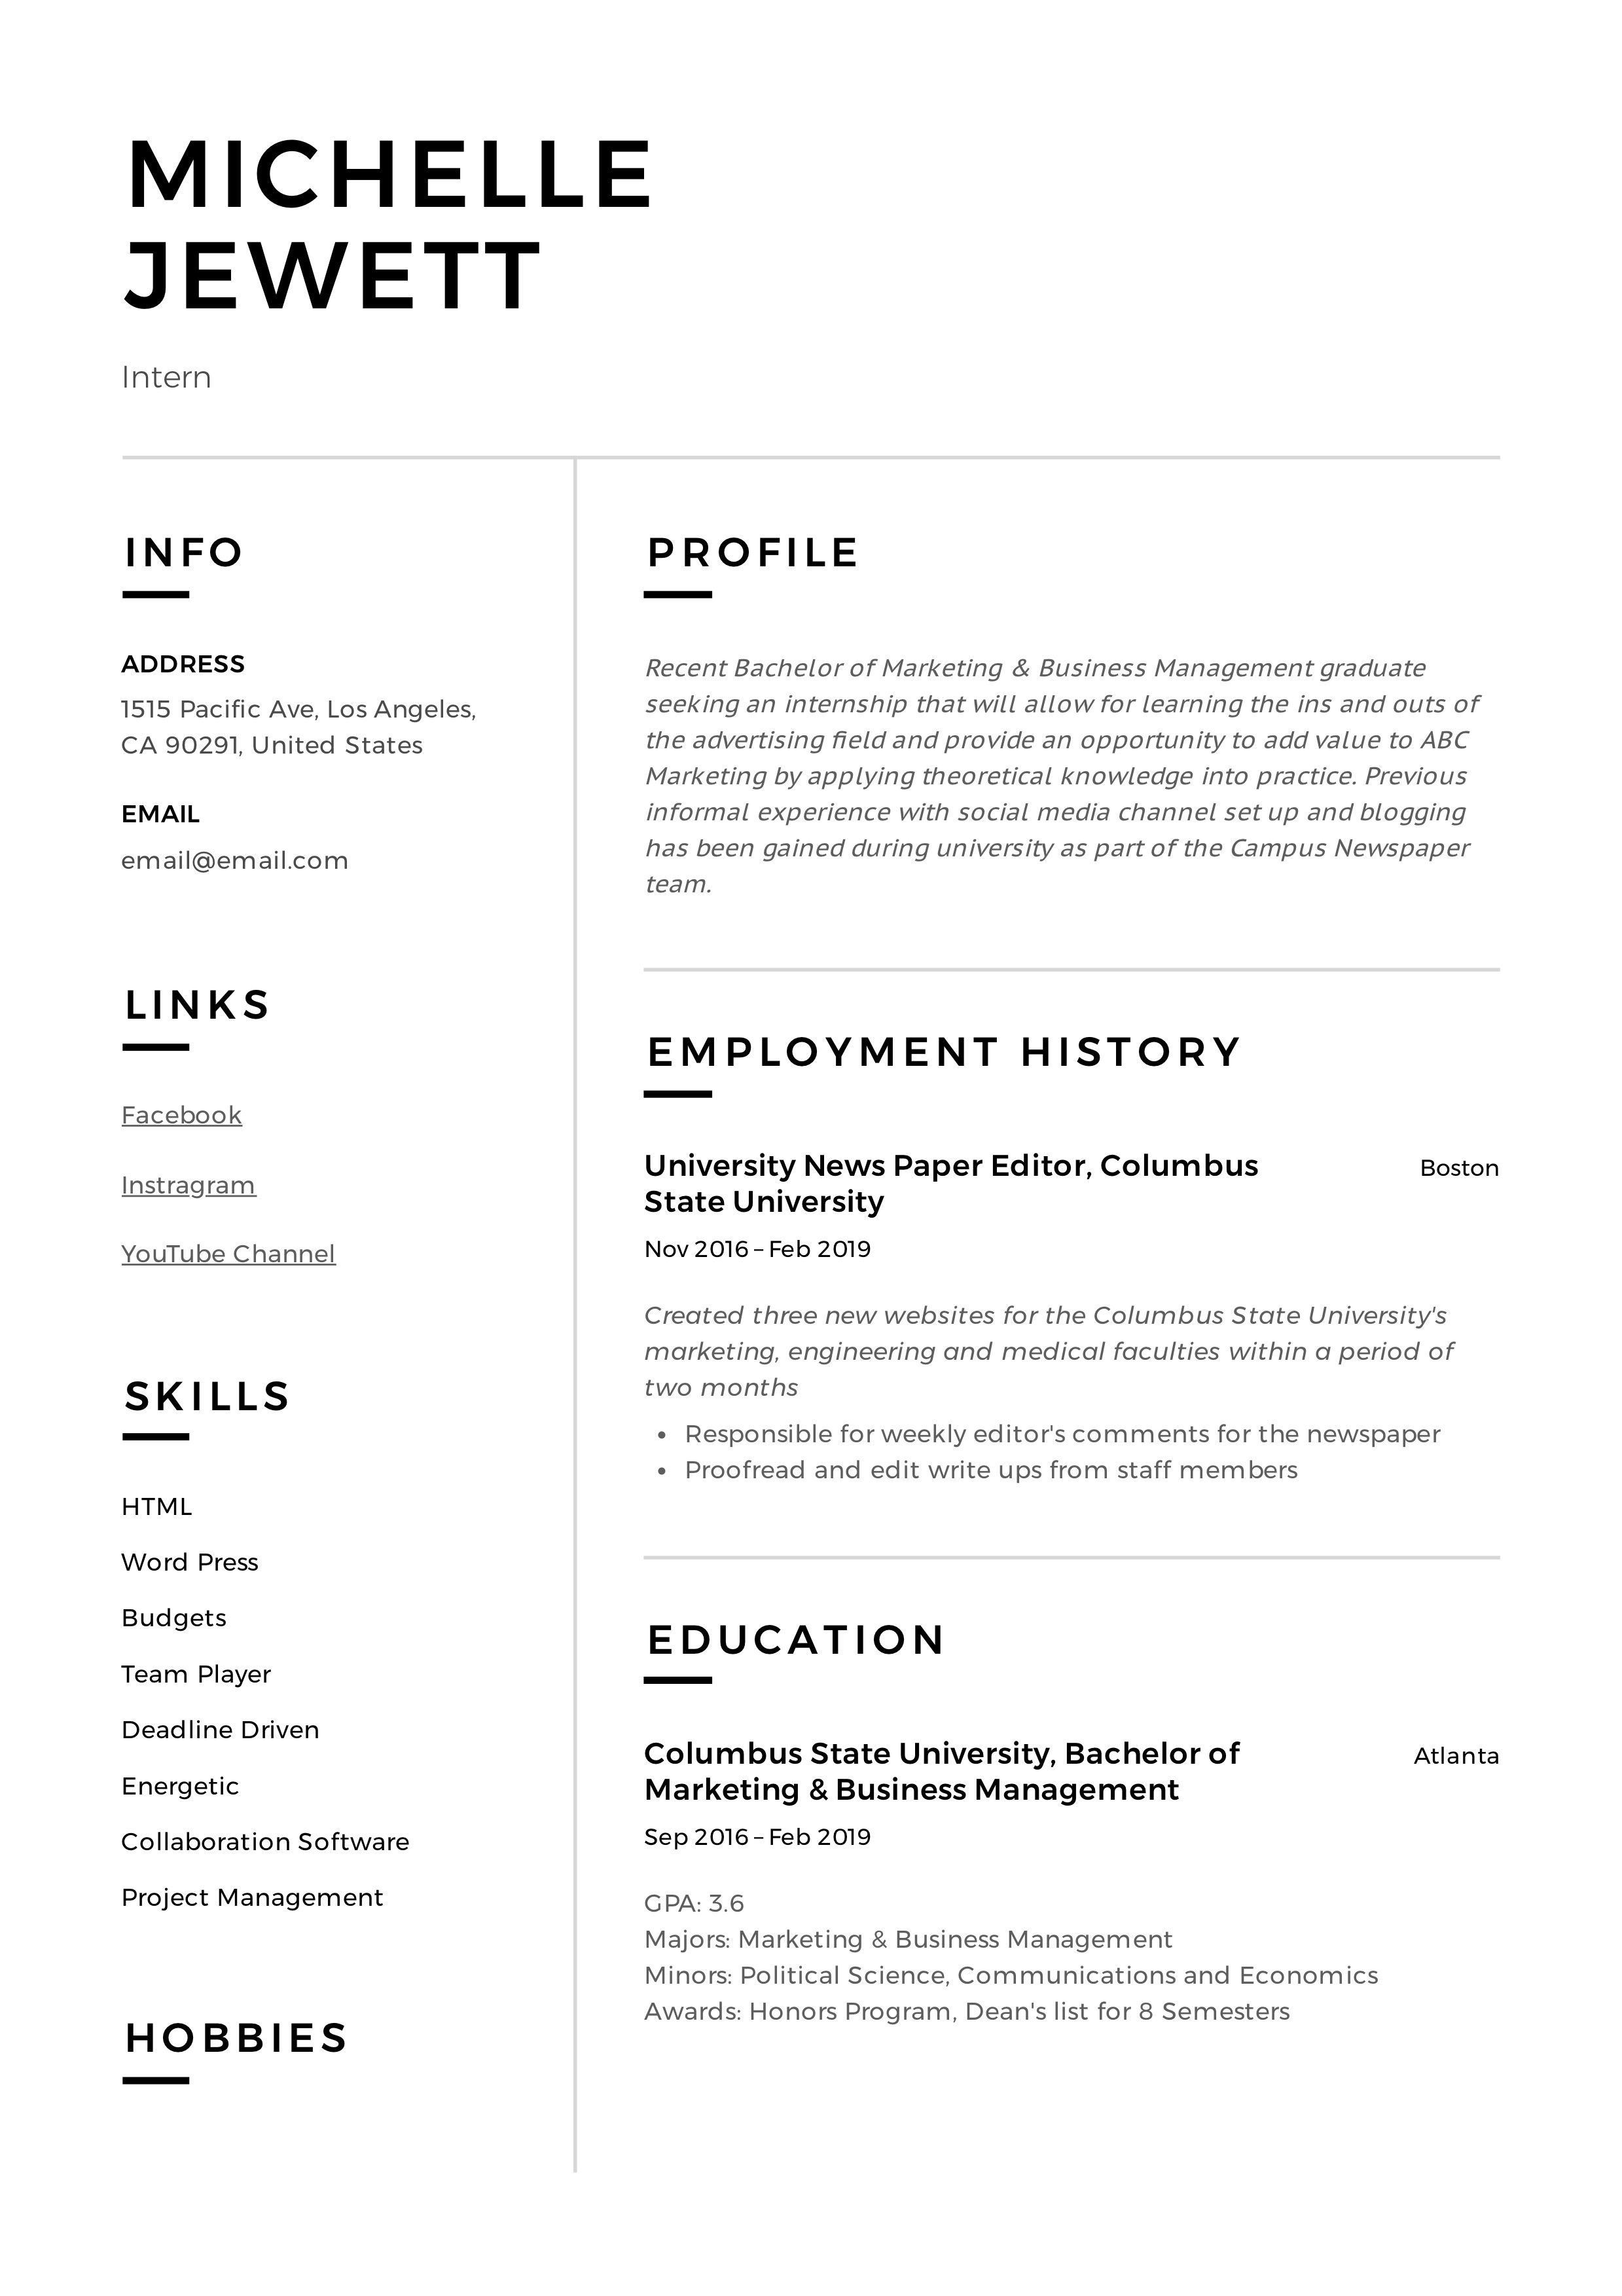 Intern resume sample in 2020 project manager resume